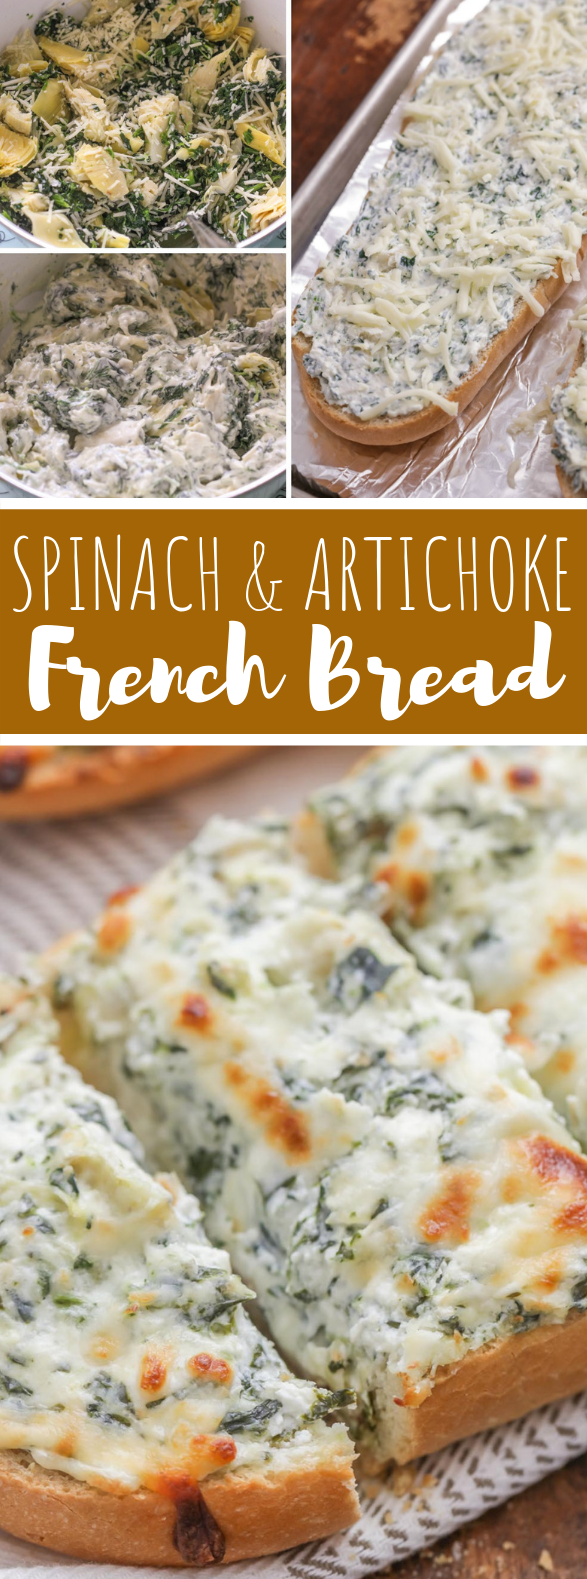 CHEESY SPINACH ARTICHOKE BREAD #vegetarian #appetizers